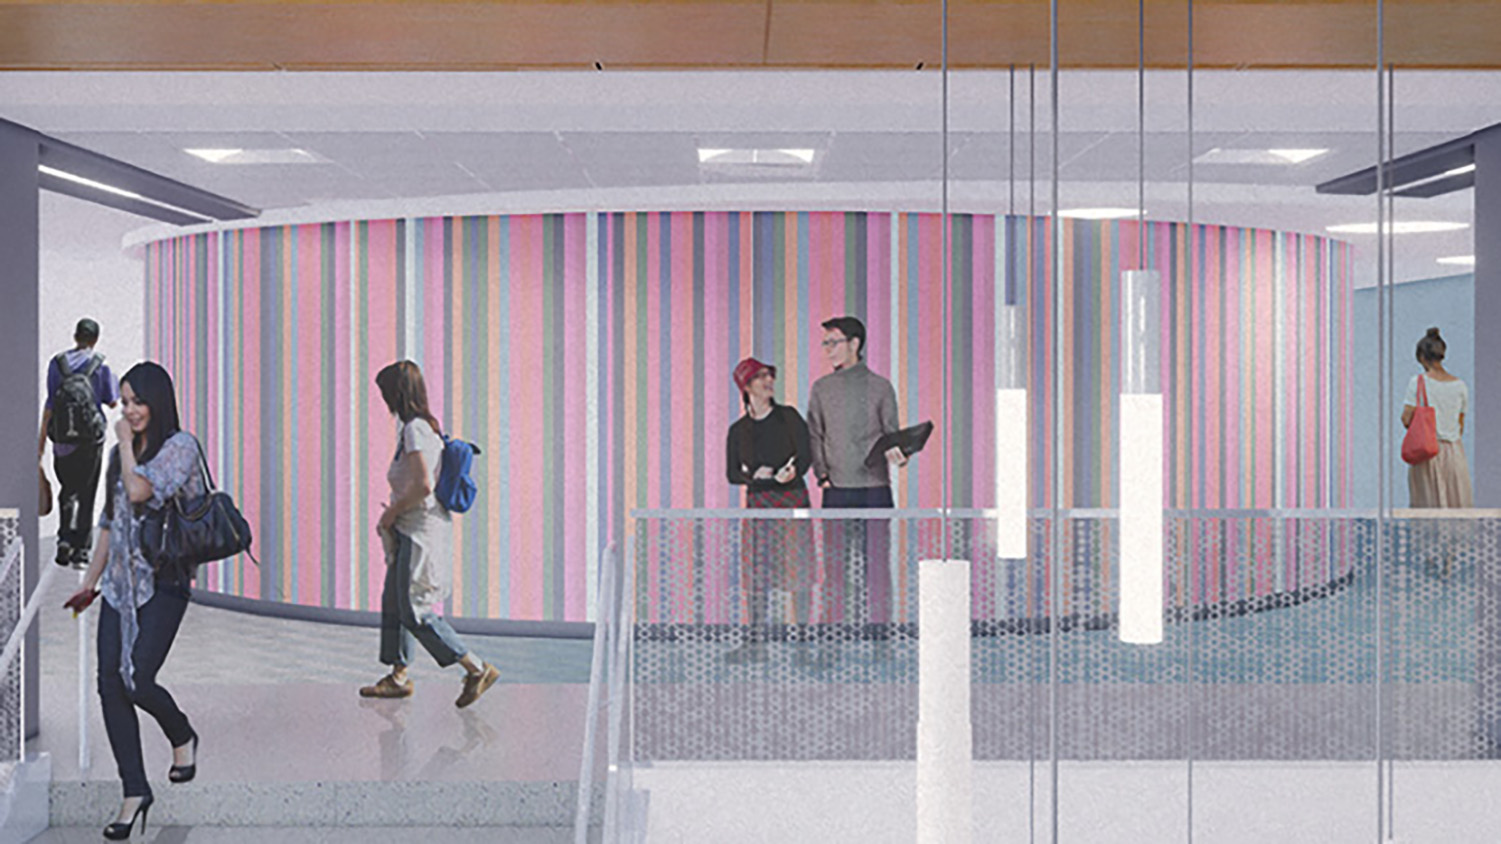 A rendering shows students walking past the circular walls of the Visualization Studio